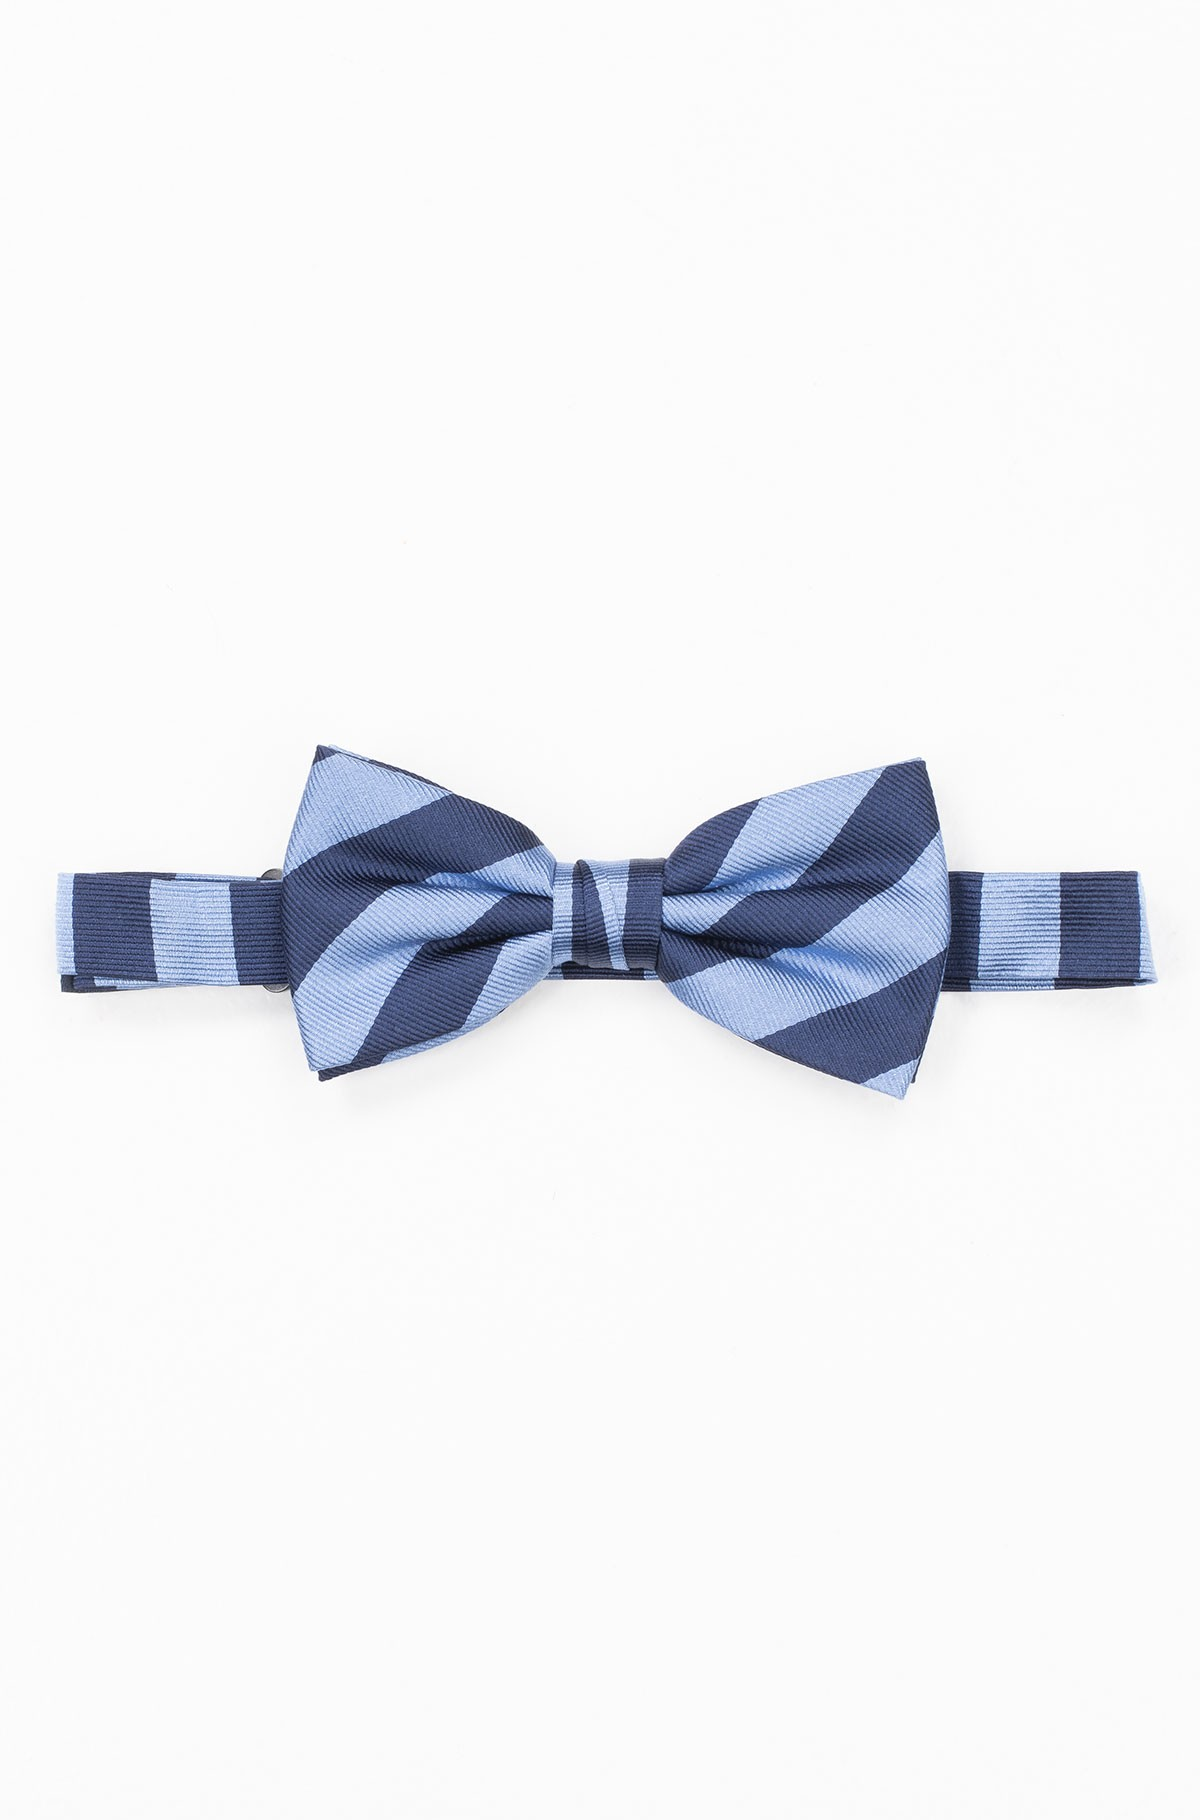 Varlytė SILK STRIPE BOWTIE-full-1